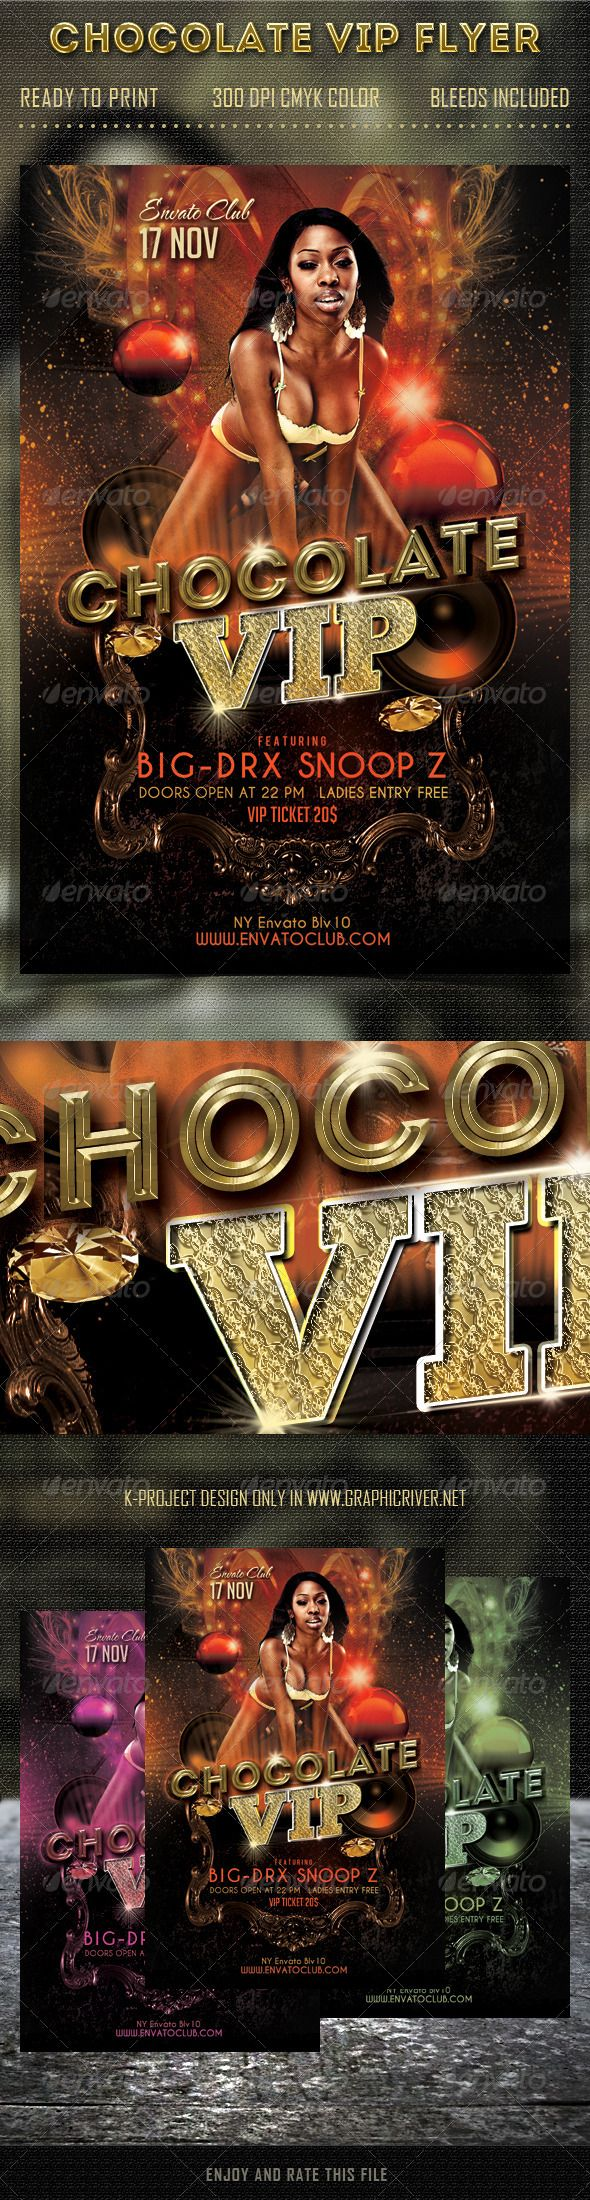 DOWNLOAD :: https://hardcast.de/article-itmid-1005901798i.html ... Chocolate VIP Party Flyer ...  celebrate, chocolate, club, dj, event, flyer, gangsta, girl, hip, hop, music, news, party, r&b, rap, sexy, sound, template, vip  ... Templates, Textures, Stock Photography, Creative Design, Infographics, Vectors, Print, Webdesign, Web Elements, Graphics, Wordpress Themes, eCommerce ... DOWNLOAD :: https://hardcast.de/article-itmid-1005901798i.html